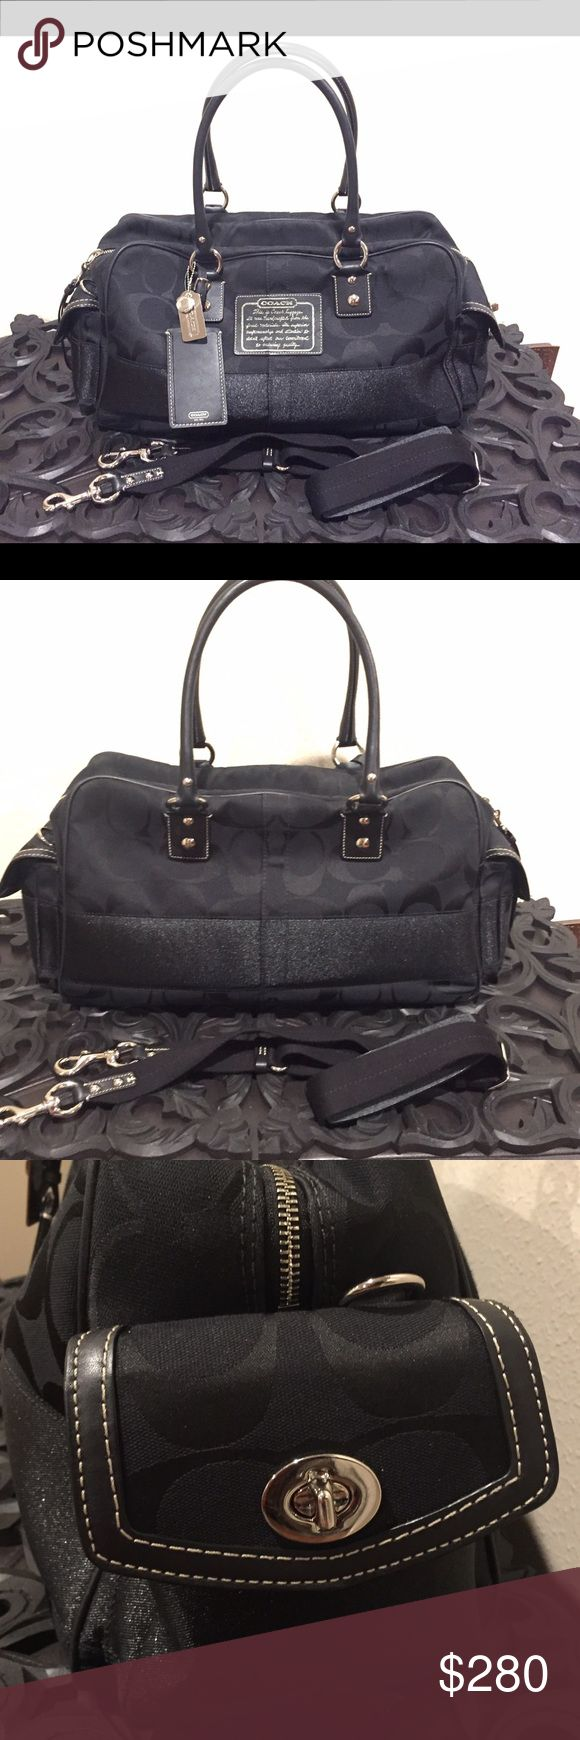 Authentic beautiful COACH travel duffle bag AUTHENTIC BEAUTIFUL COACH SIGNATURE LARGE TRAVEL DUFFLE BAG - IN BLACK  IN EXCELLENT PRE-OWNED CONDITION  - No rips, stains, tears. Very unique and rare. Perfect for travel as carry on bag. Has 2 side pockets for easy access to your phone, passport or other travel documents. Also includes a long shoulder strap. Reasonable offers accepted.  Coach Bags Travel Bags